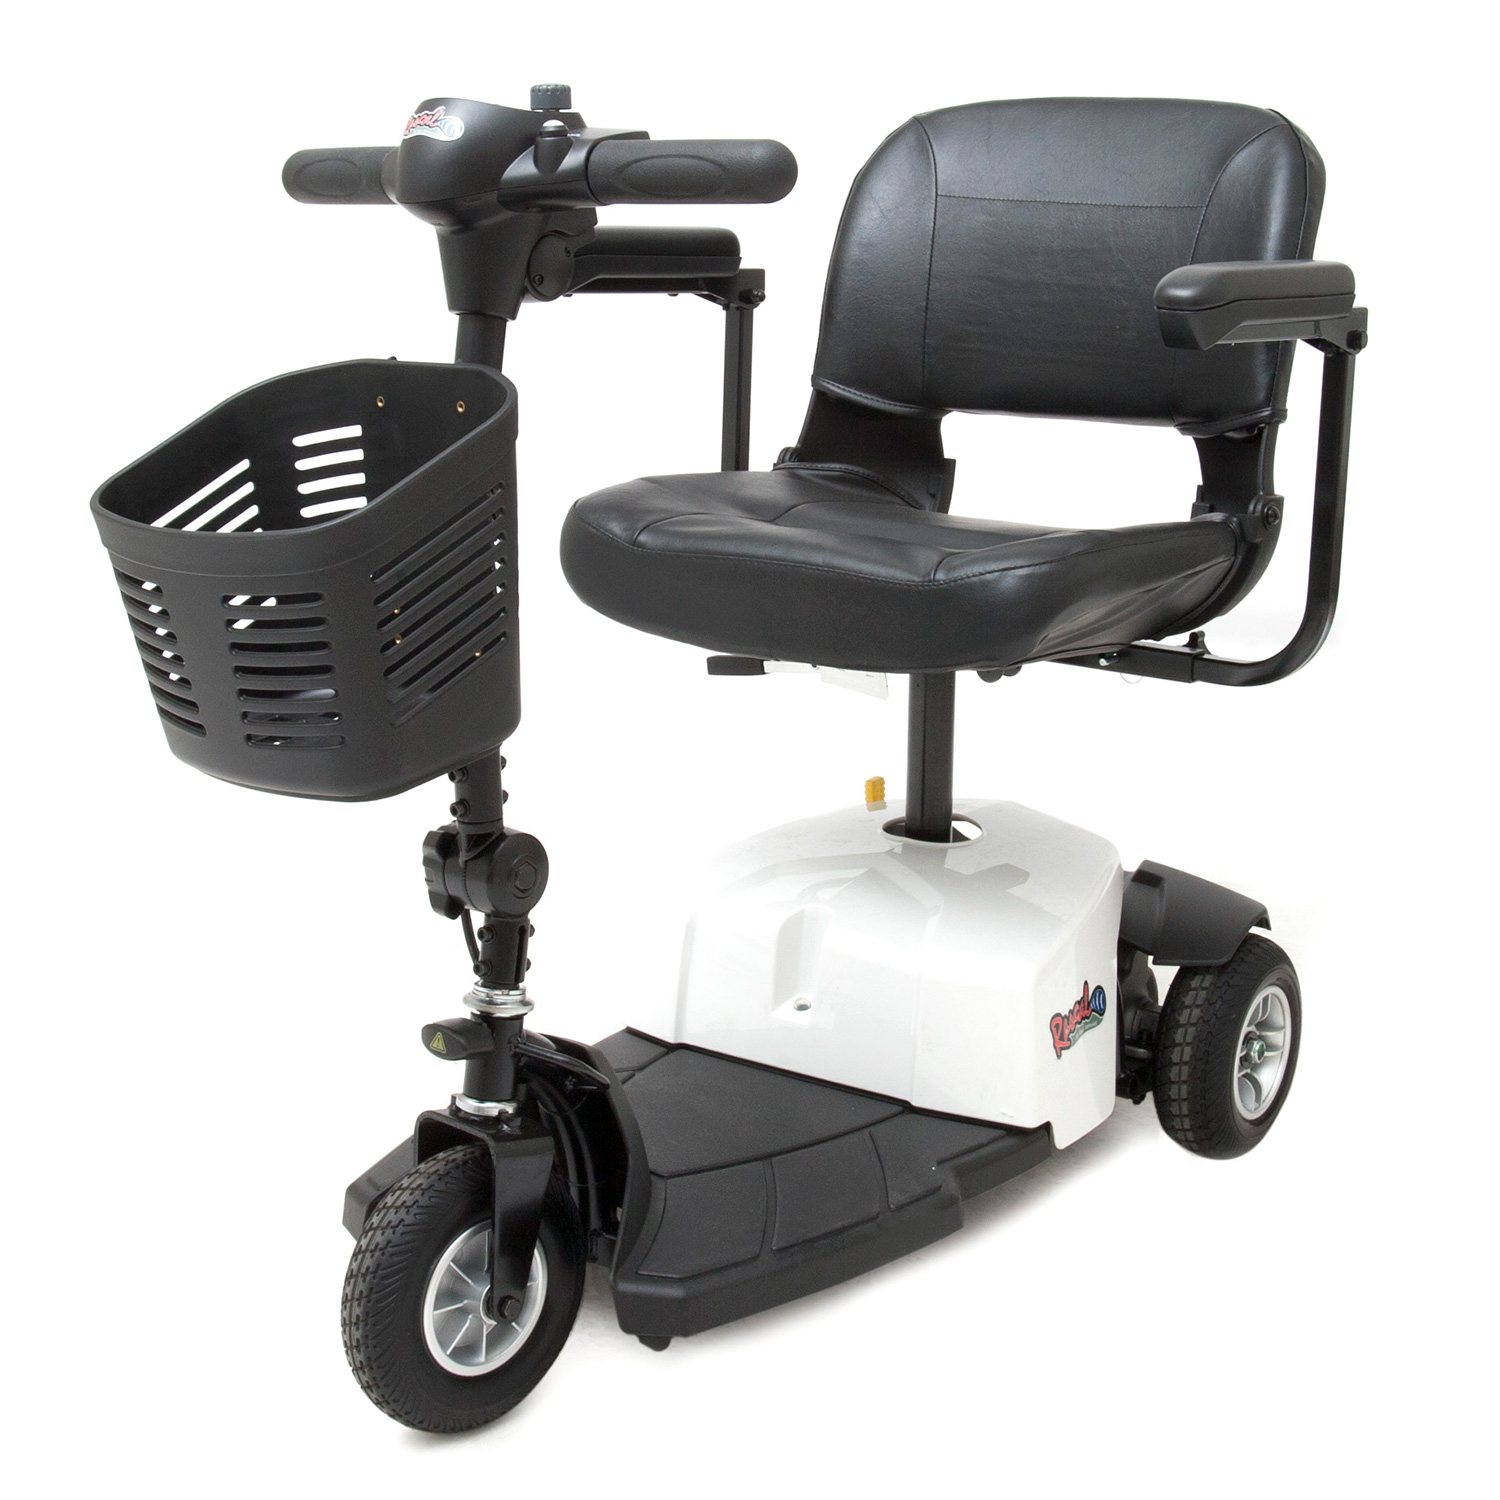 Power Wheels Scooter Rascal 8 3-wheel Scooter